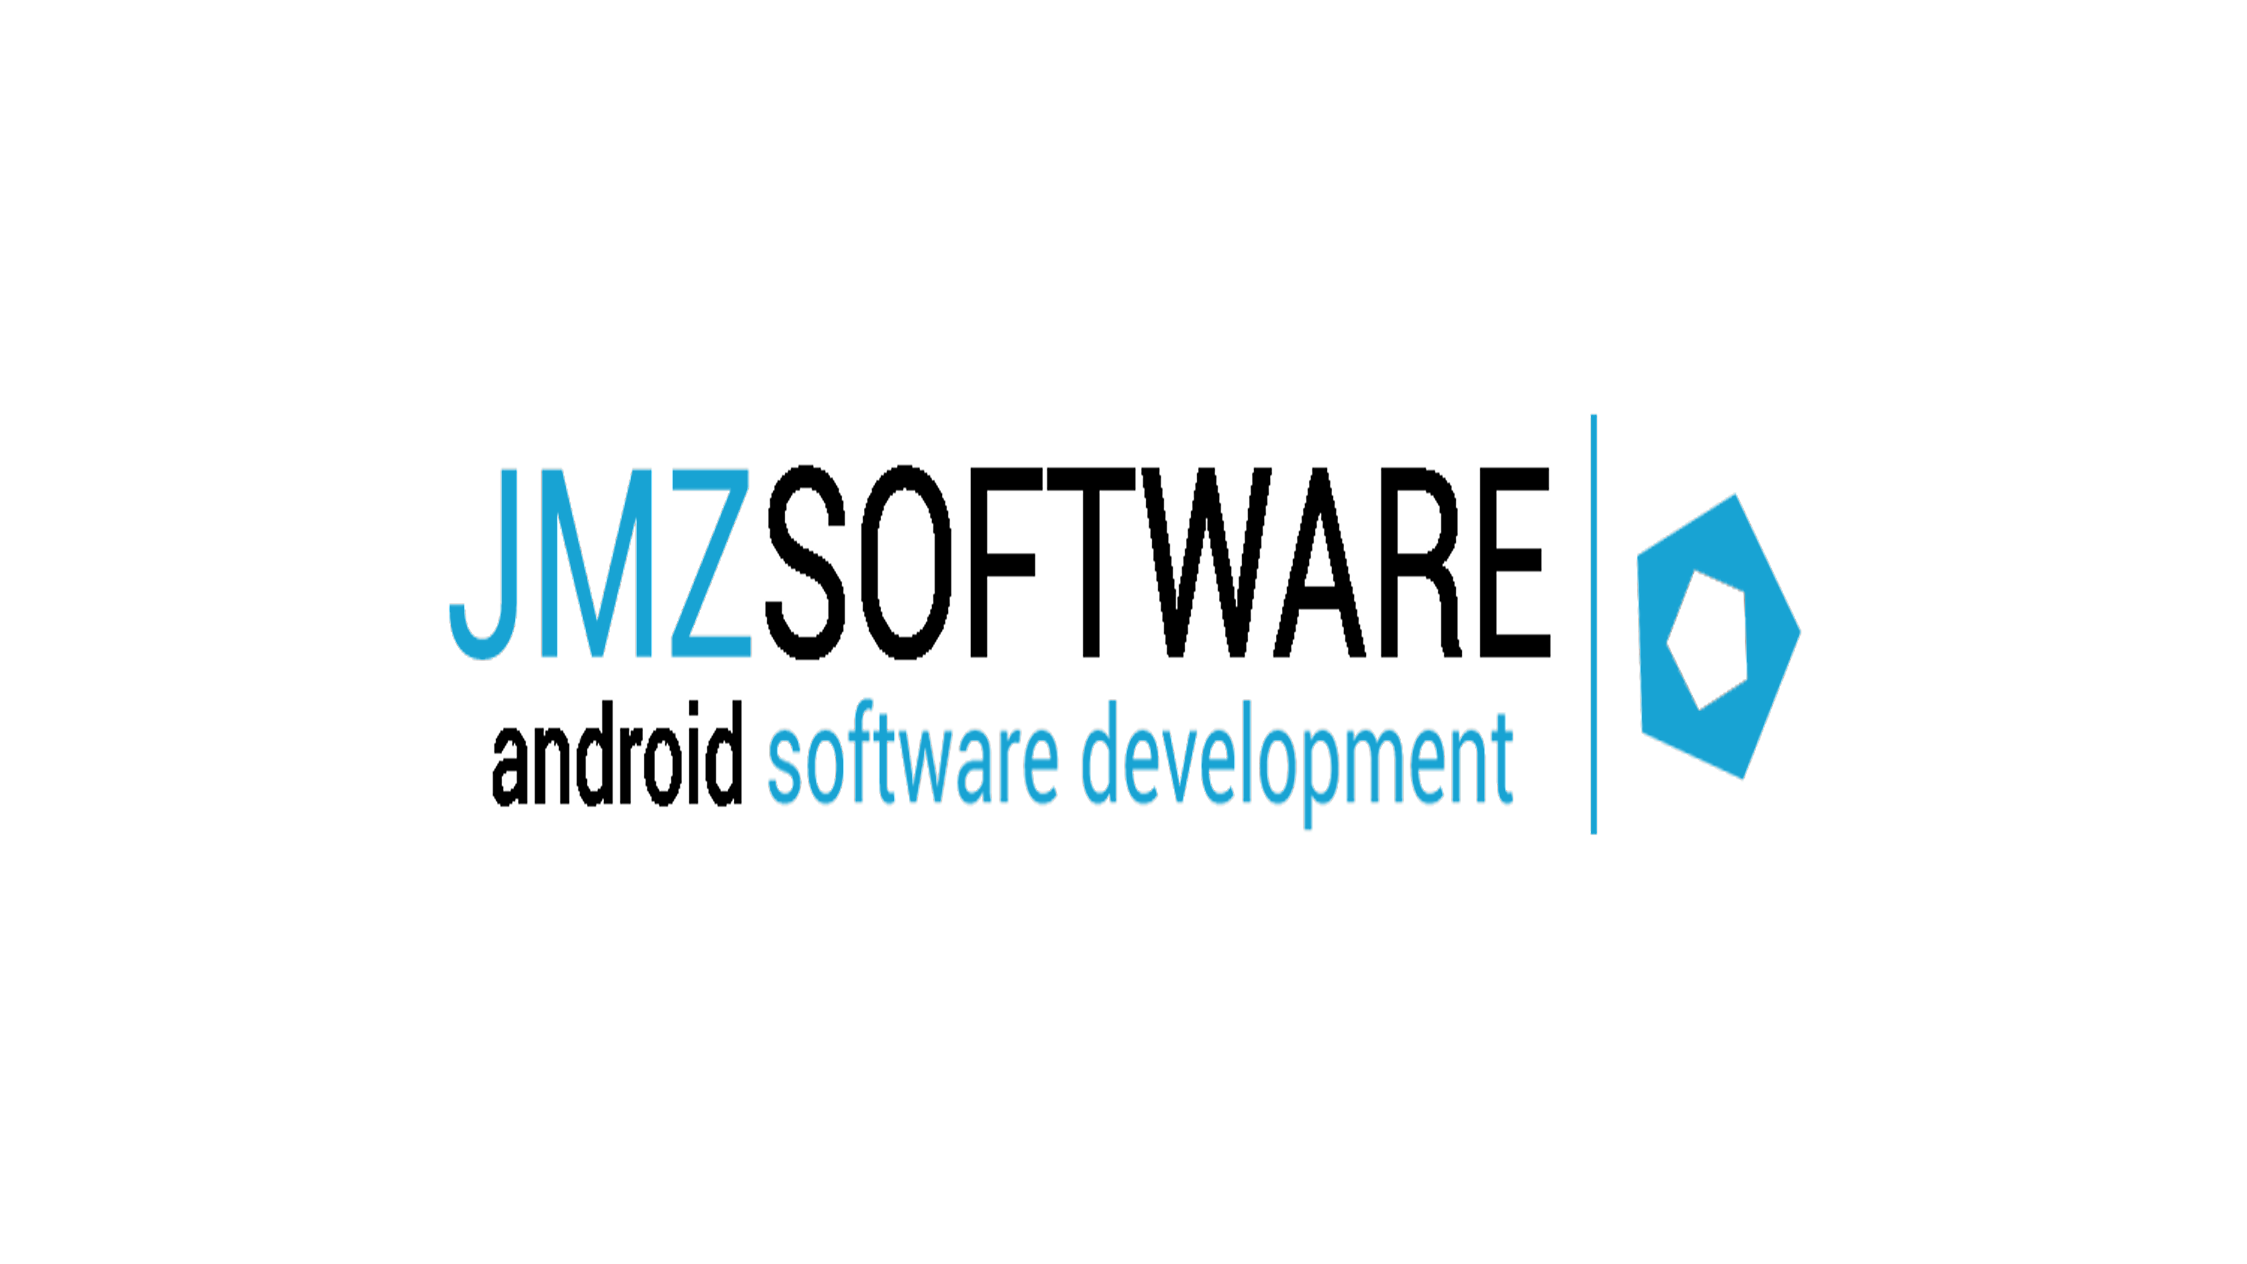 Jmz Software